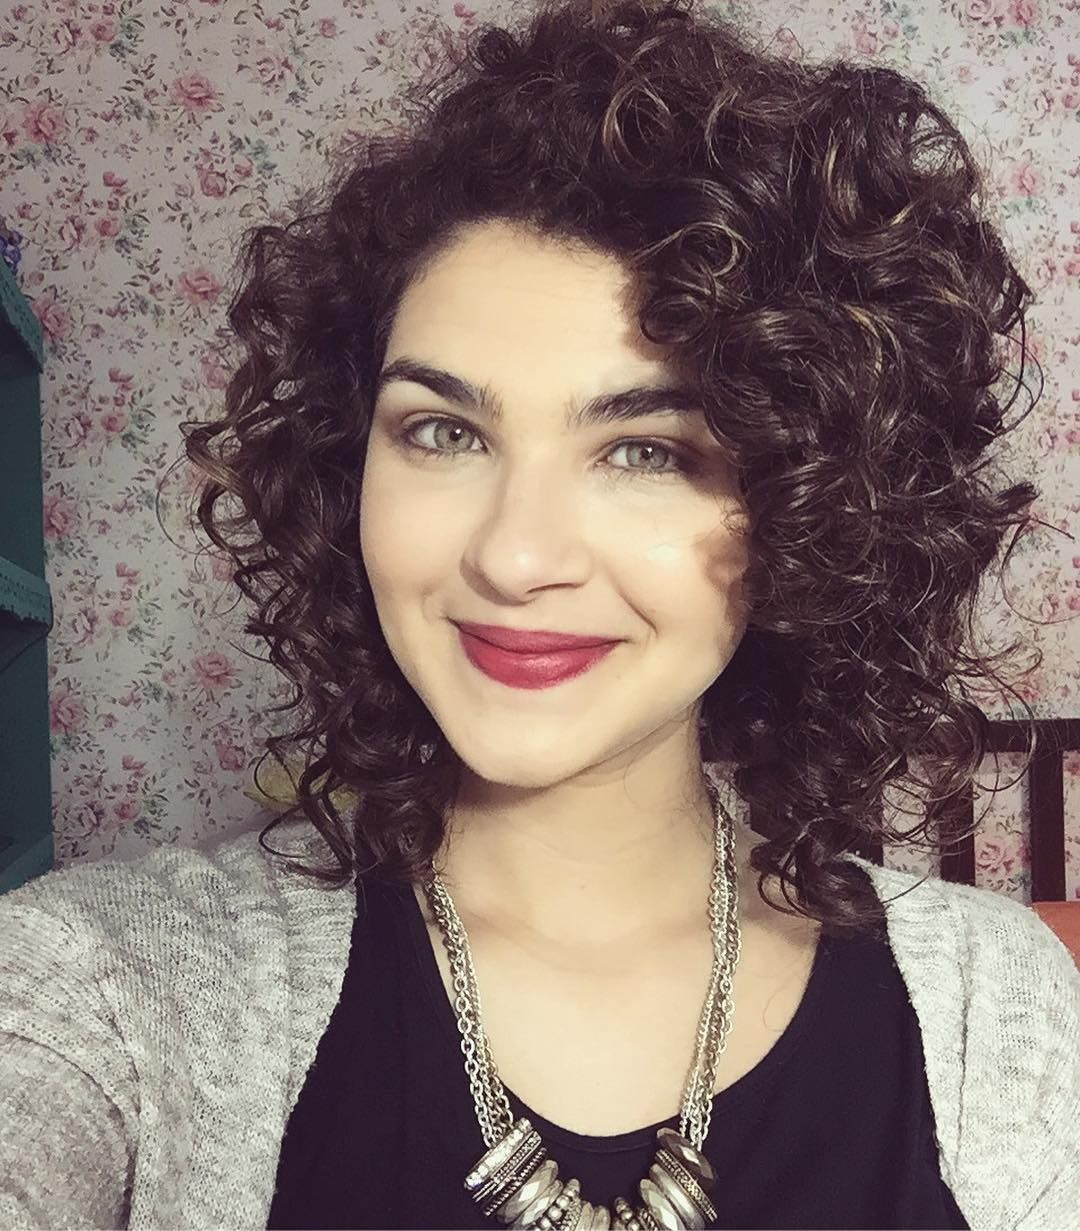 Medium haircut curly hair ideas pinterest hair style curly